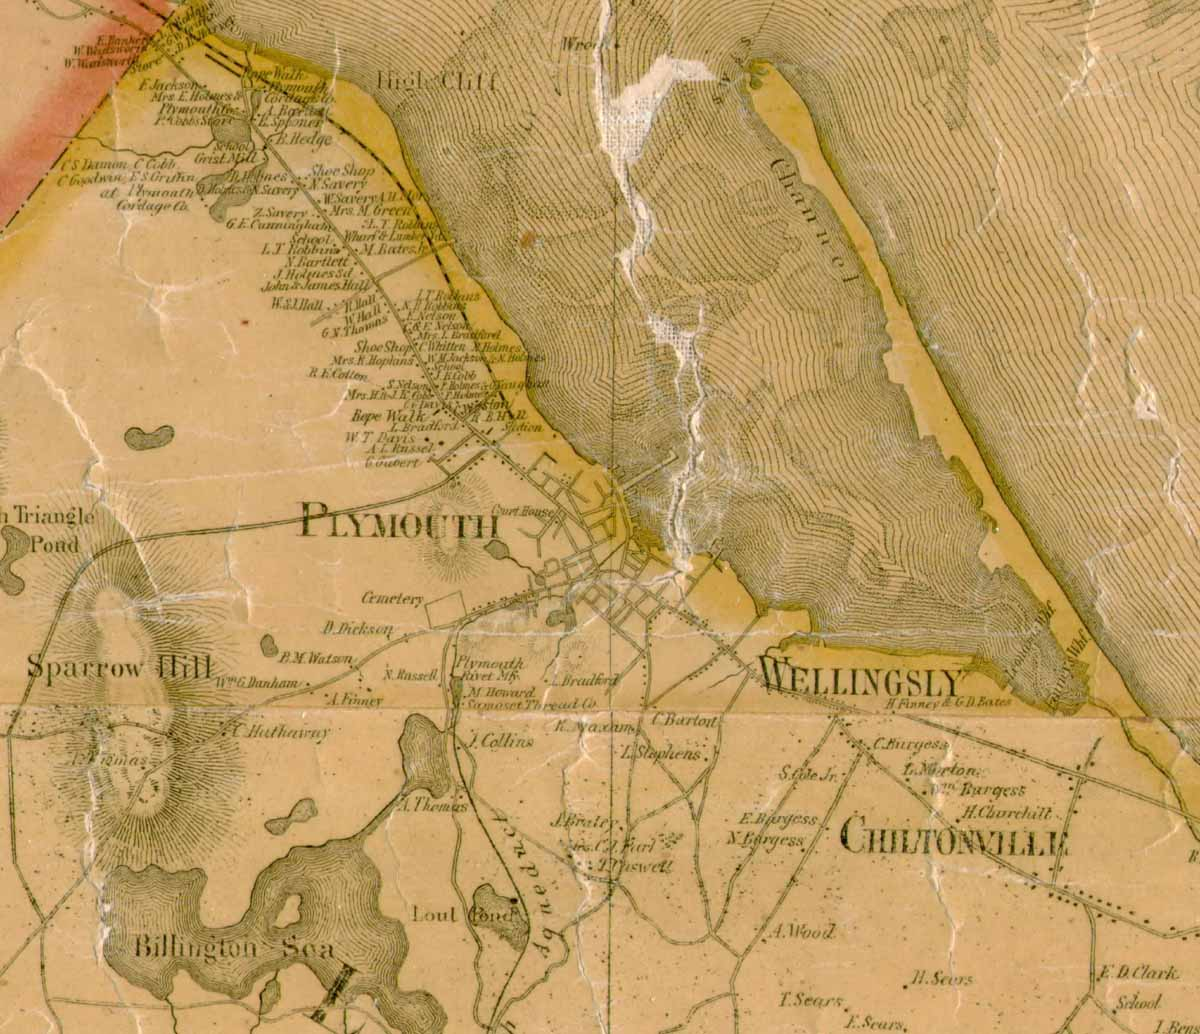 1857 Map of Plymouth